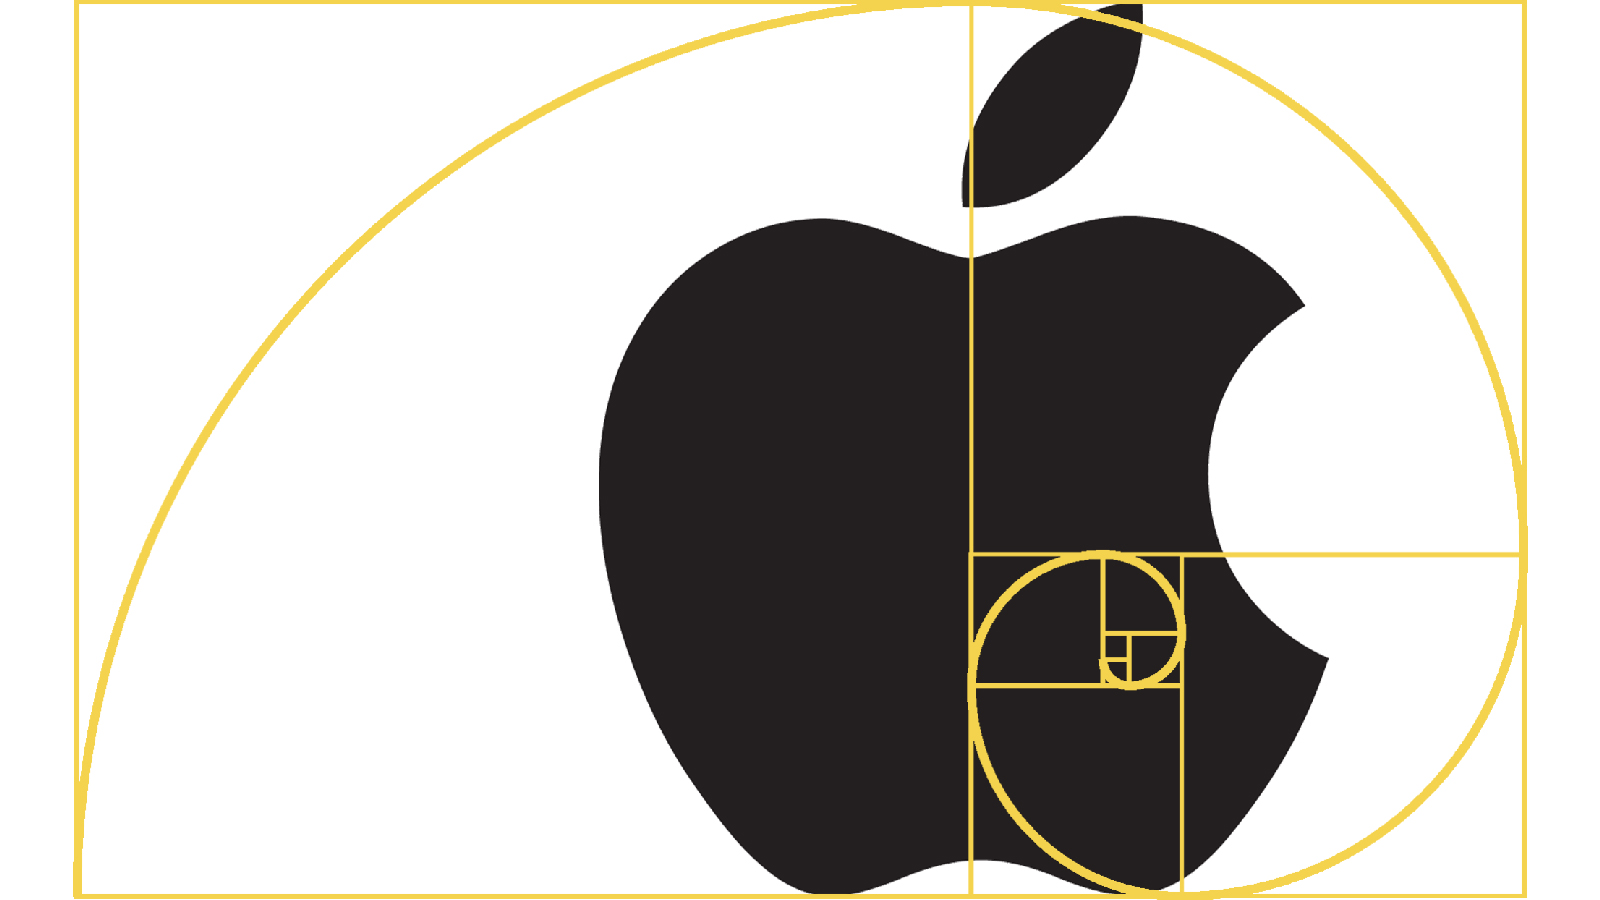 Does The Apple Logo Really Adhere To The Golden Ratio